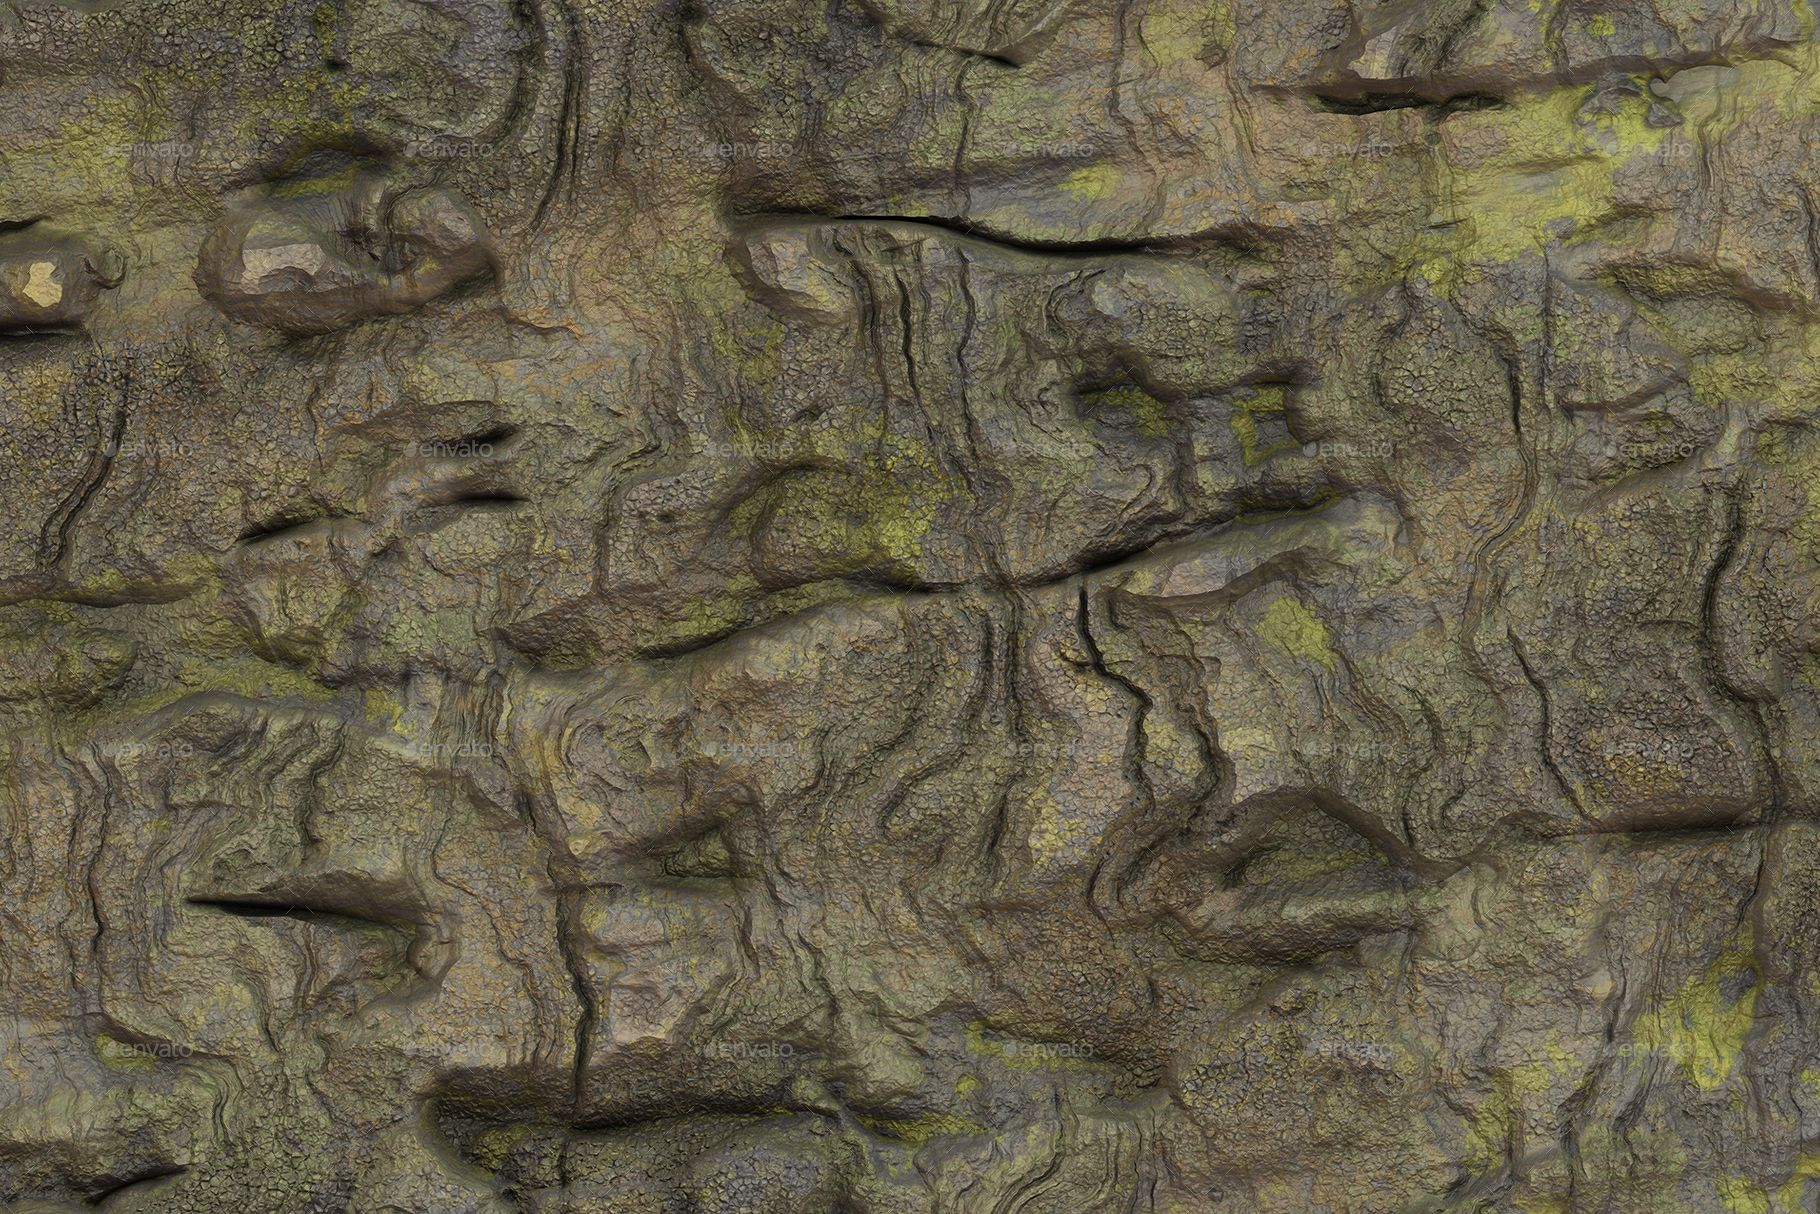 10 Rocky Cliff Background Textures Rocky Cliff Textures 1820x1214